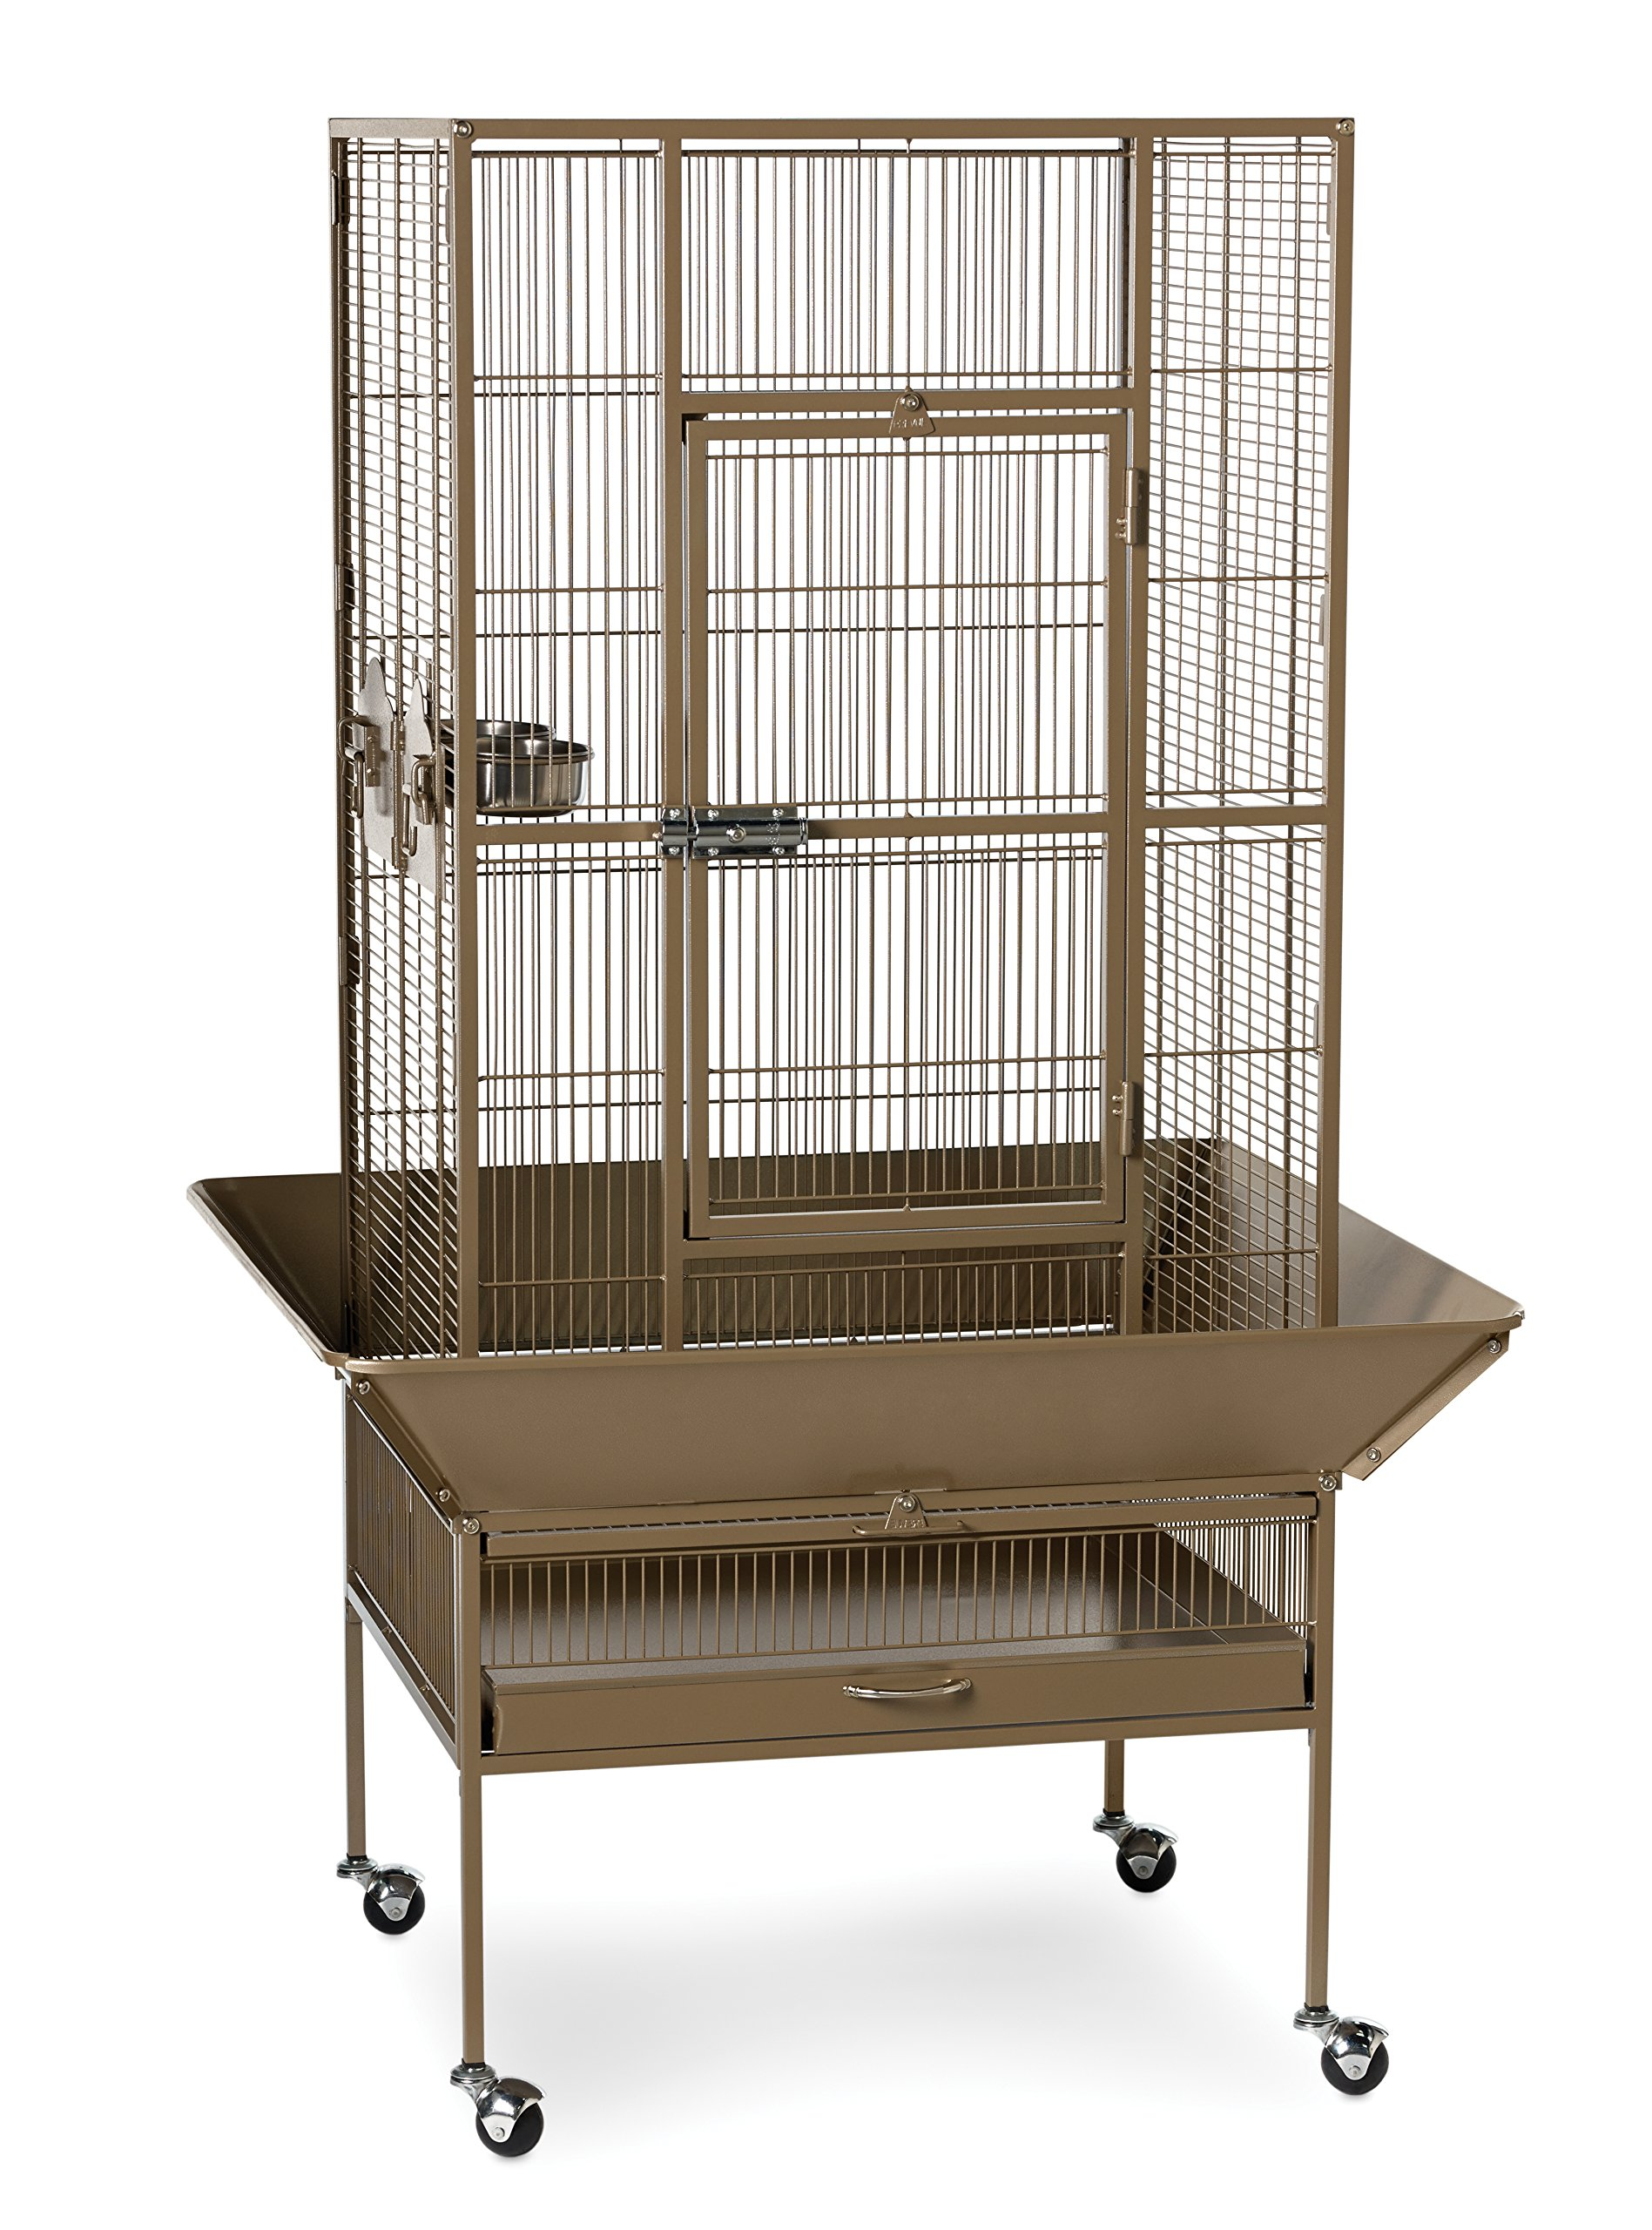 Prevue Pet Products 3352COCO Park Plaza Bird Cage, Coco Brown